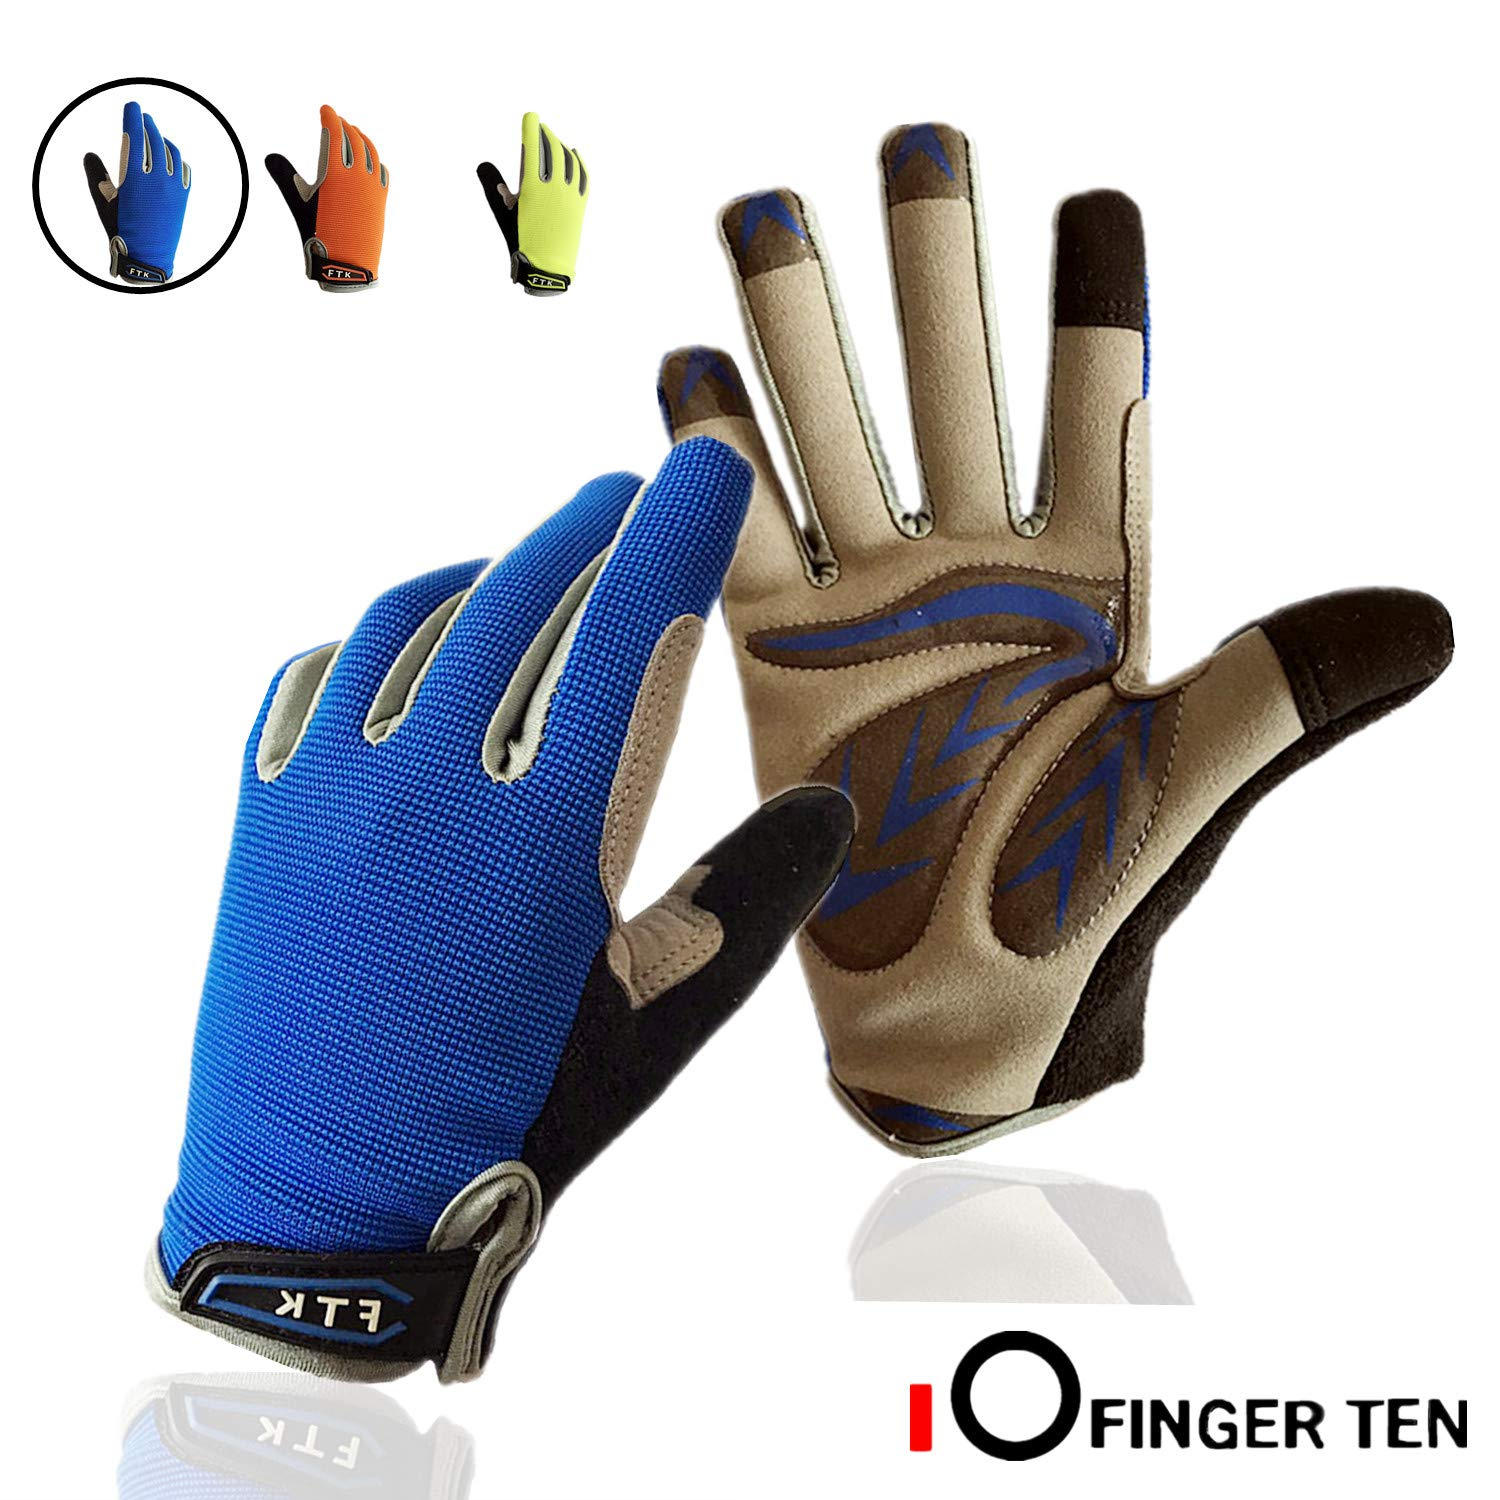 FINGER TEN Cycling Gloves Kids Boys Girls Youth Full Finger Pair Touch Screen Mountain Bike Cycling Gloves Warm Cold Weather Gel Padded Non-Slip Age 2-11